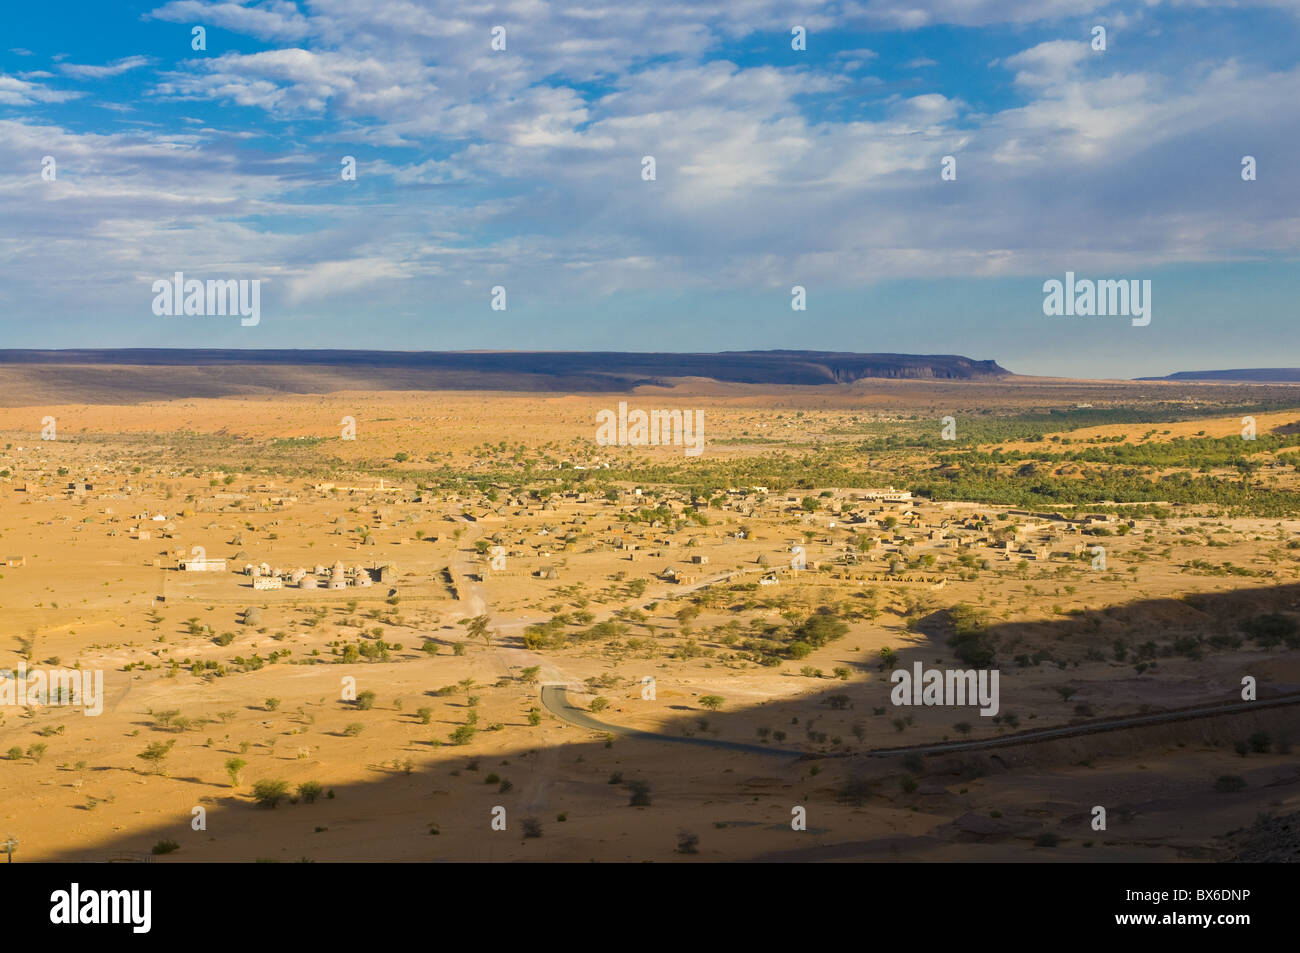 View of a wide canyon in the desert near Atar, Mauritania, Africa Stock Photo